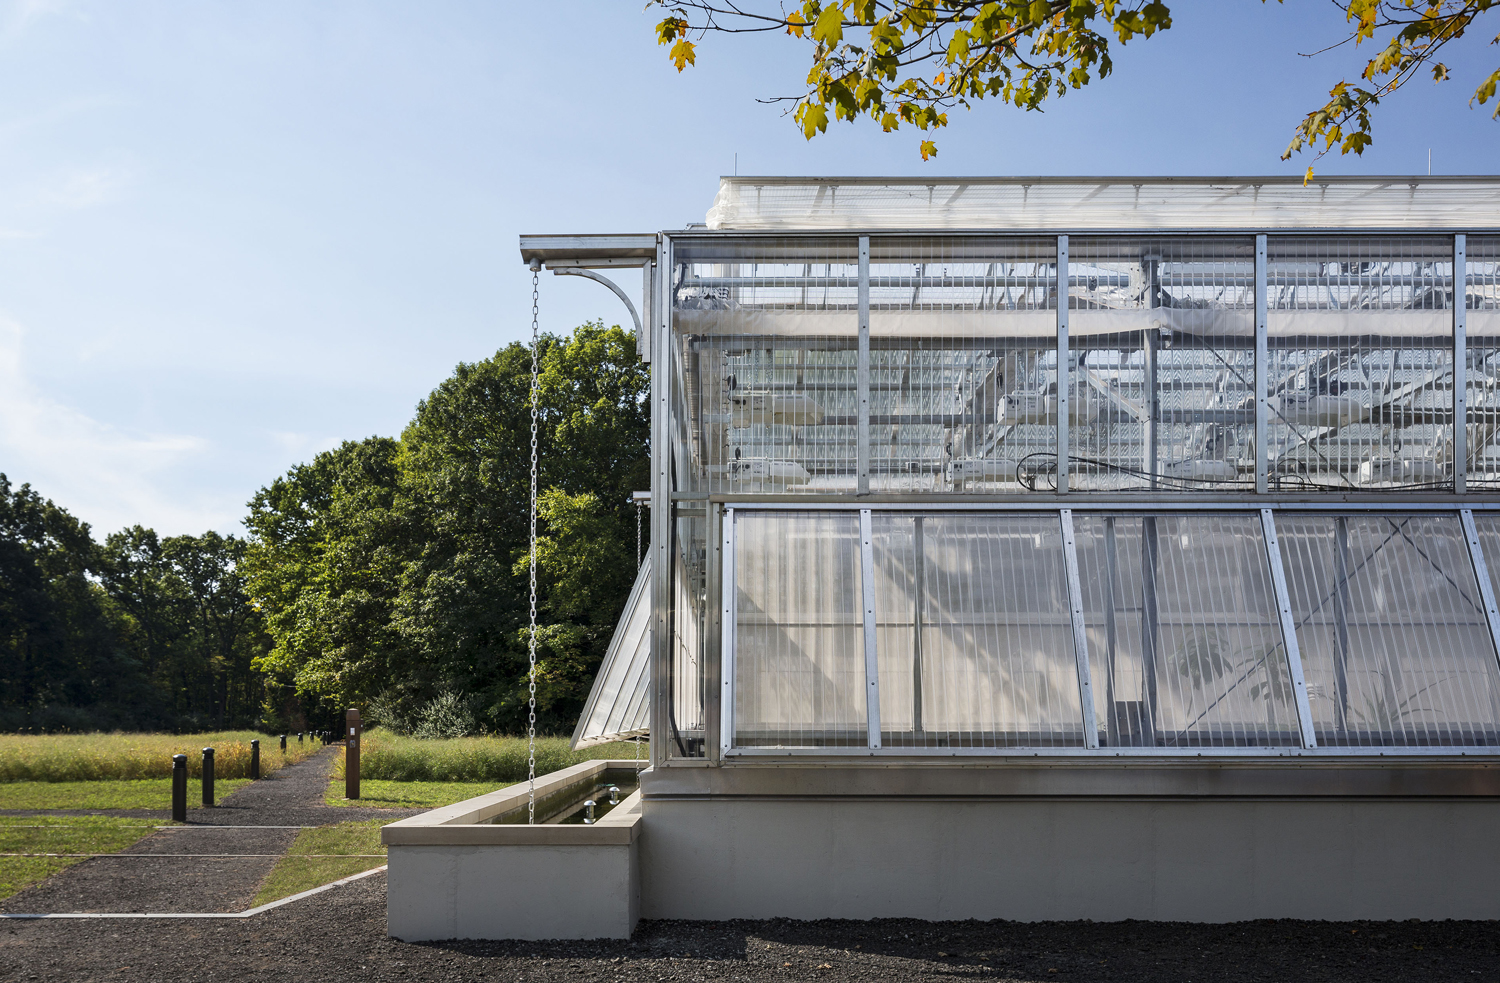 <p>A research-grade greenhouse, connected to classrooms, provides botanical study space and the opportunity to grow food year-round. A seasonal garden sits in the meadow for expanded production and programming. Rainwater collection systems supply greenhouse and garden irrigation.</p>